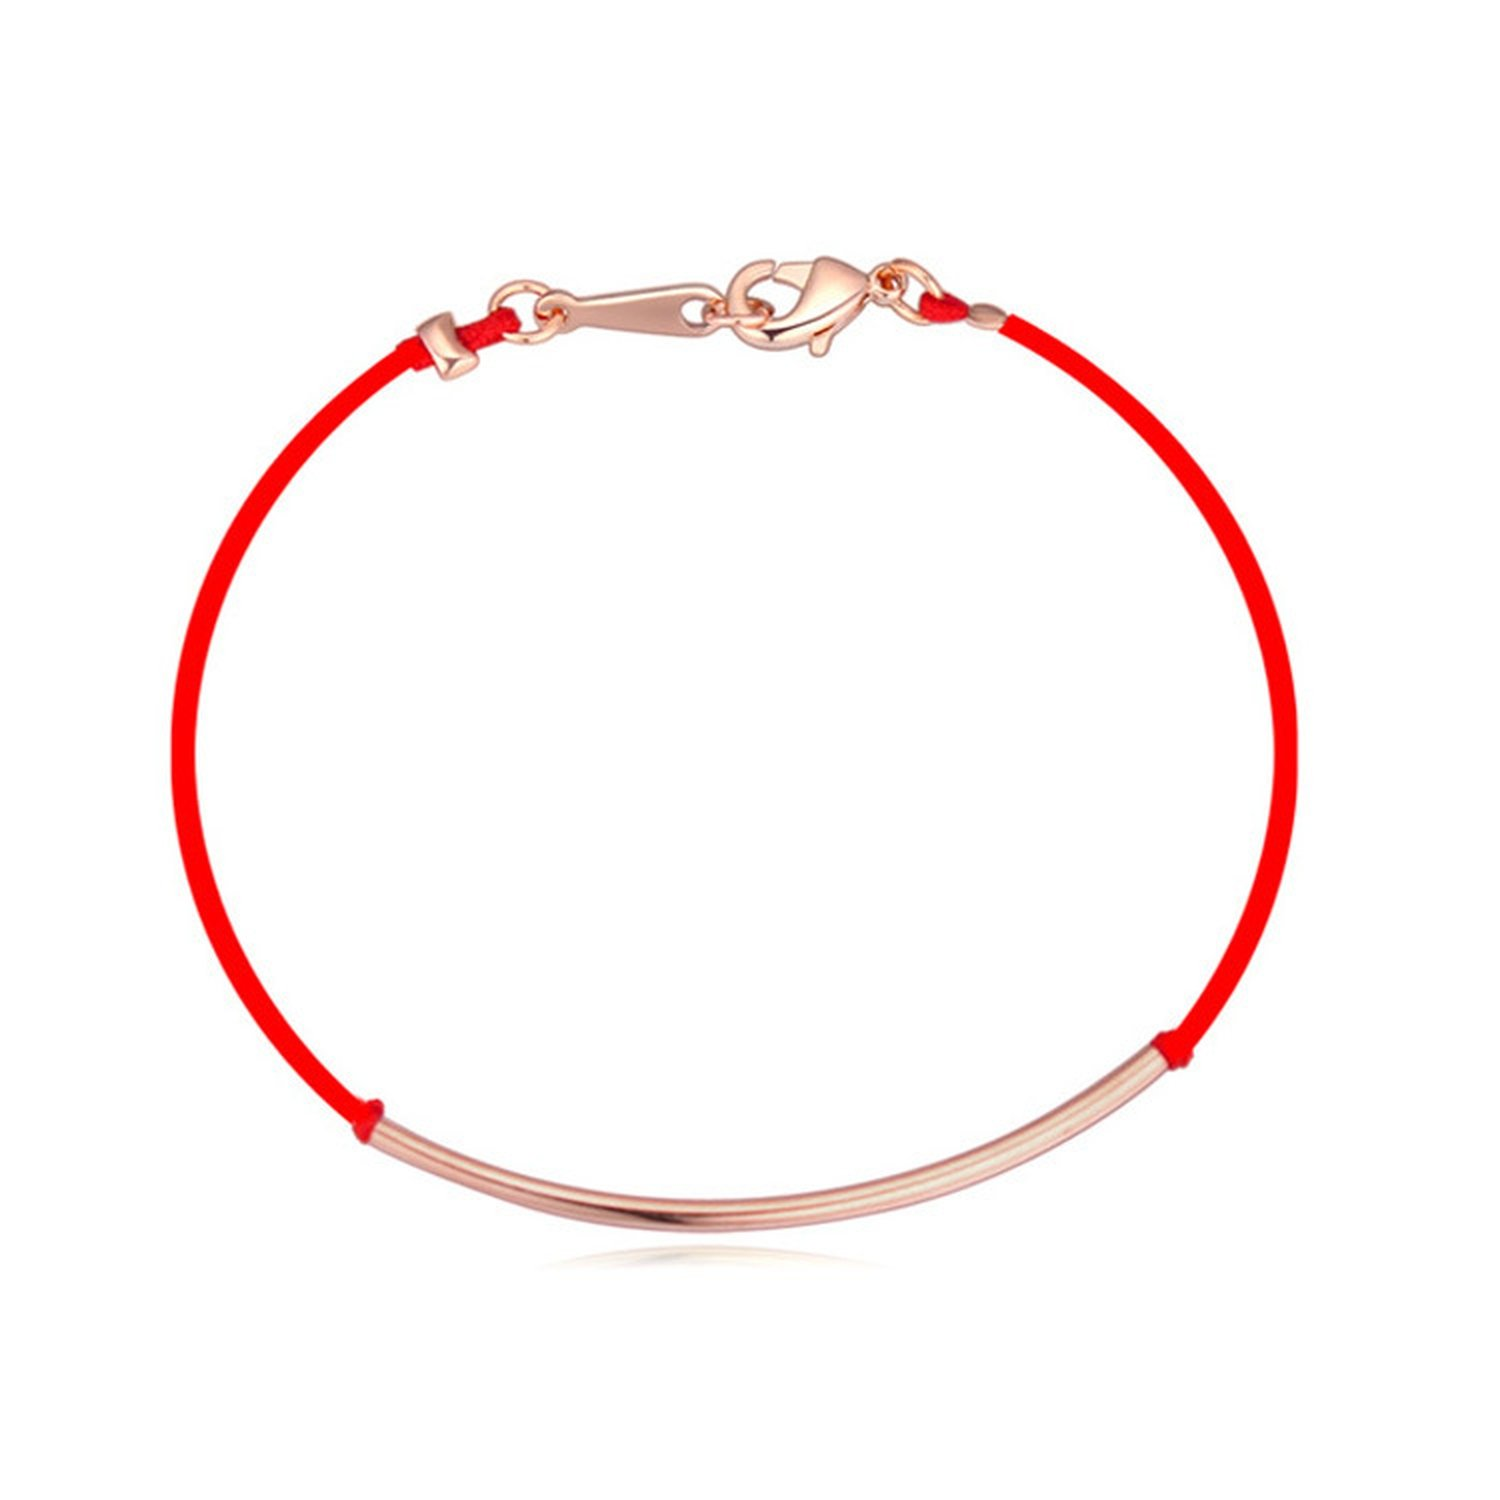 Flower-Bud born red rope braided bracelet high-end gold plated fine jewelry past and present Korean jewelry,Rose Gold by Flower-Bud (Image #1)